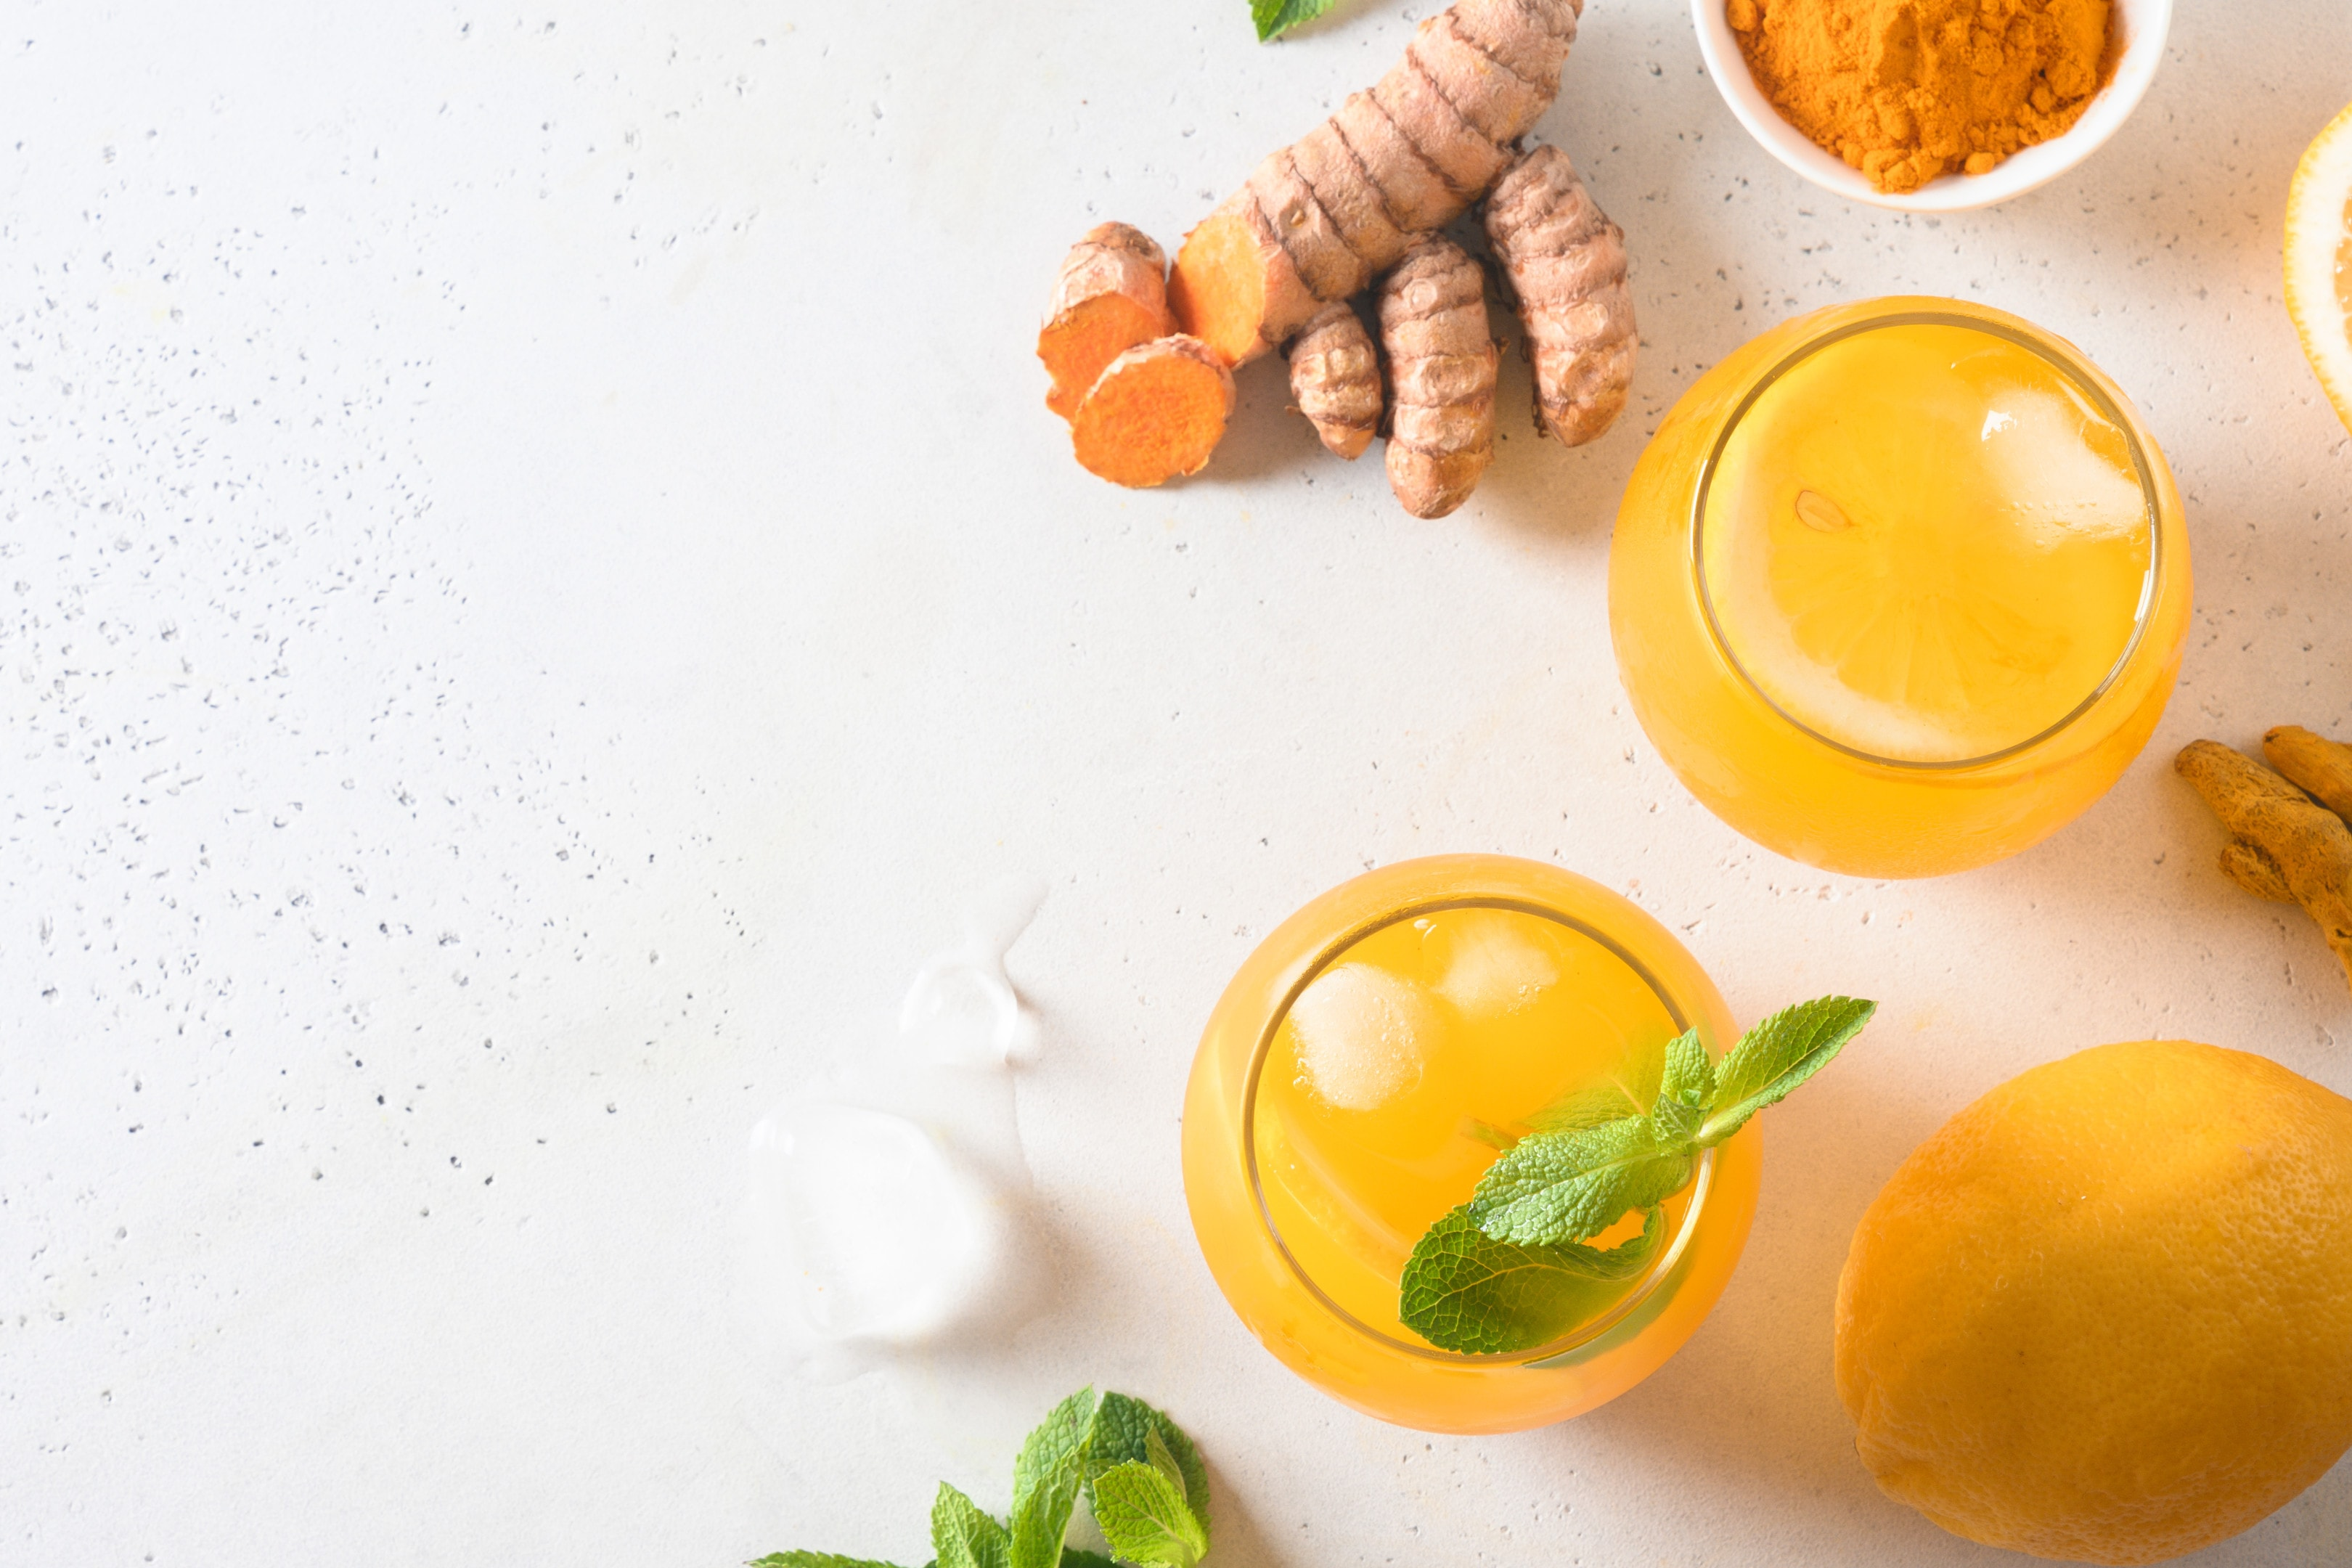 Jamu indonesian herbal beverage with natural ingredients turmeric and ginger on white table